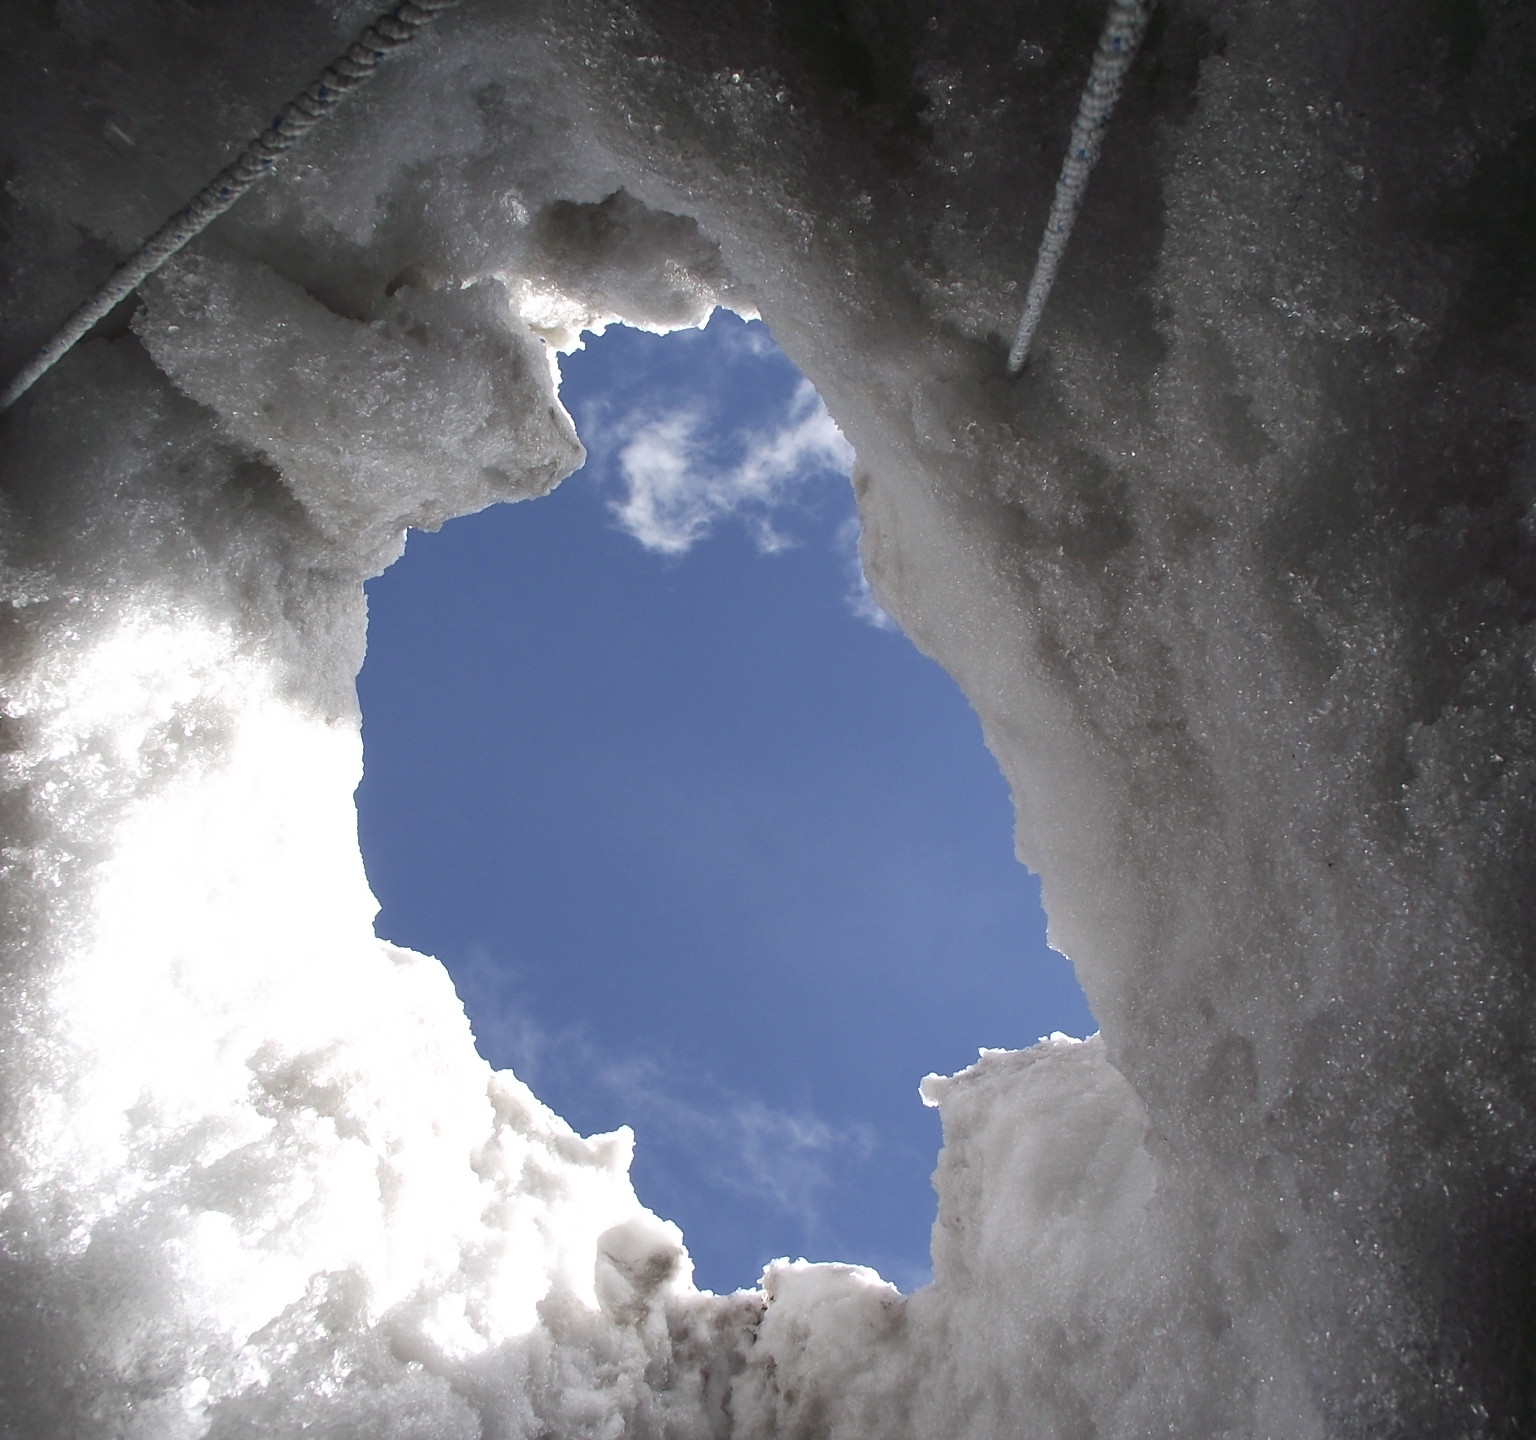 View from inside a crevasse